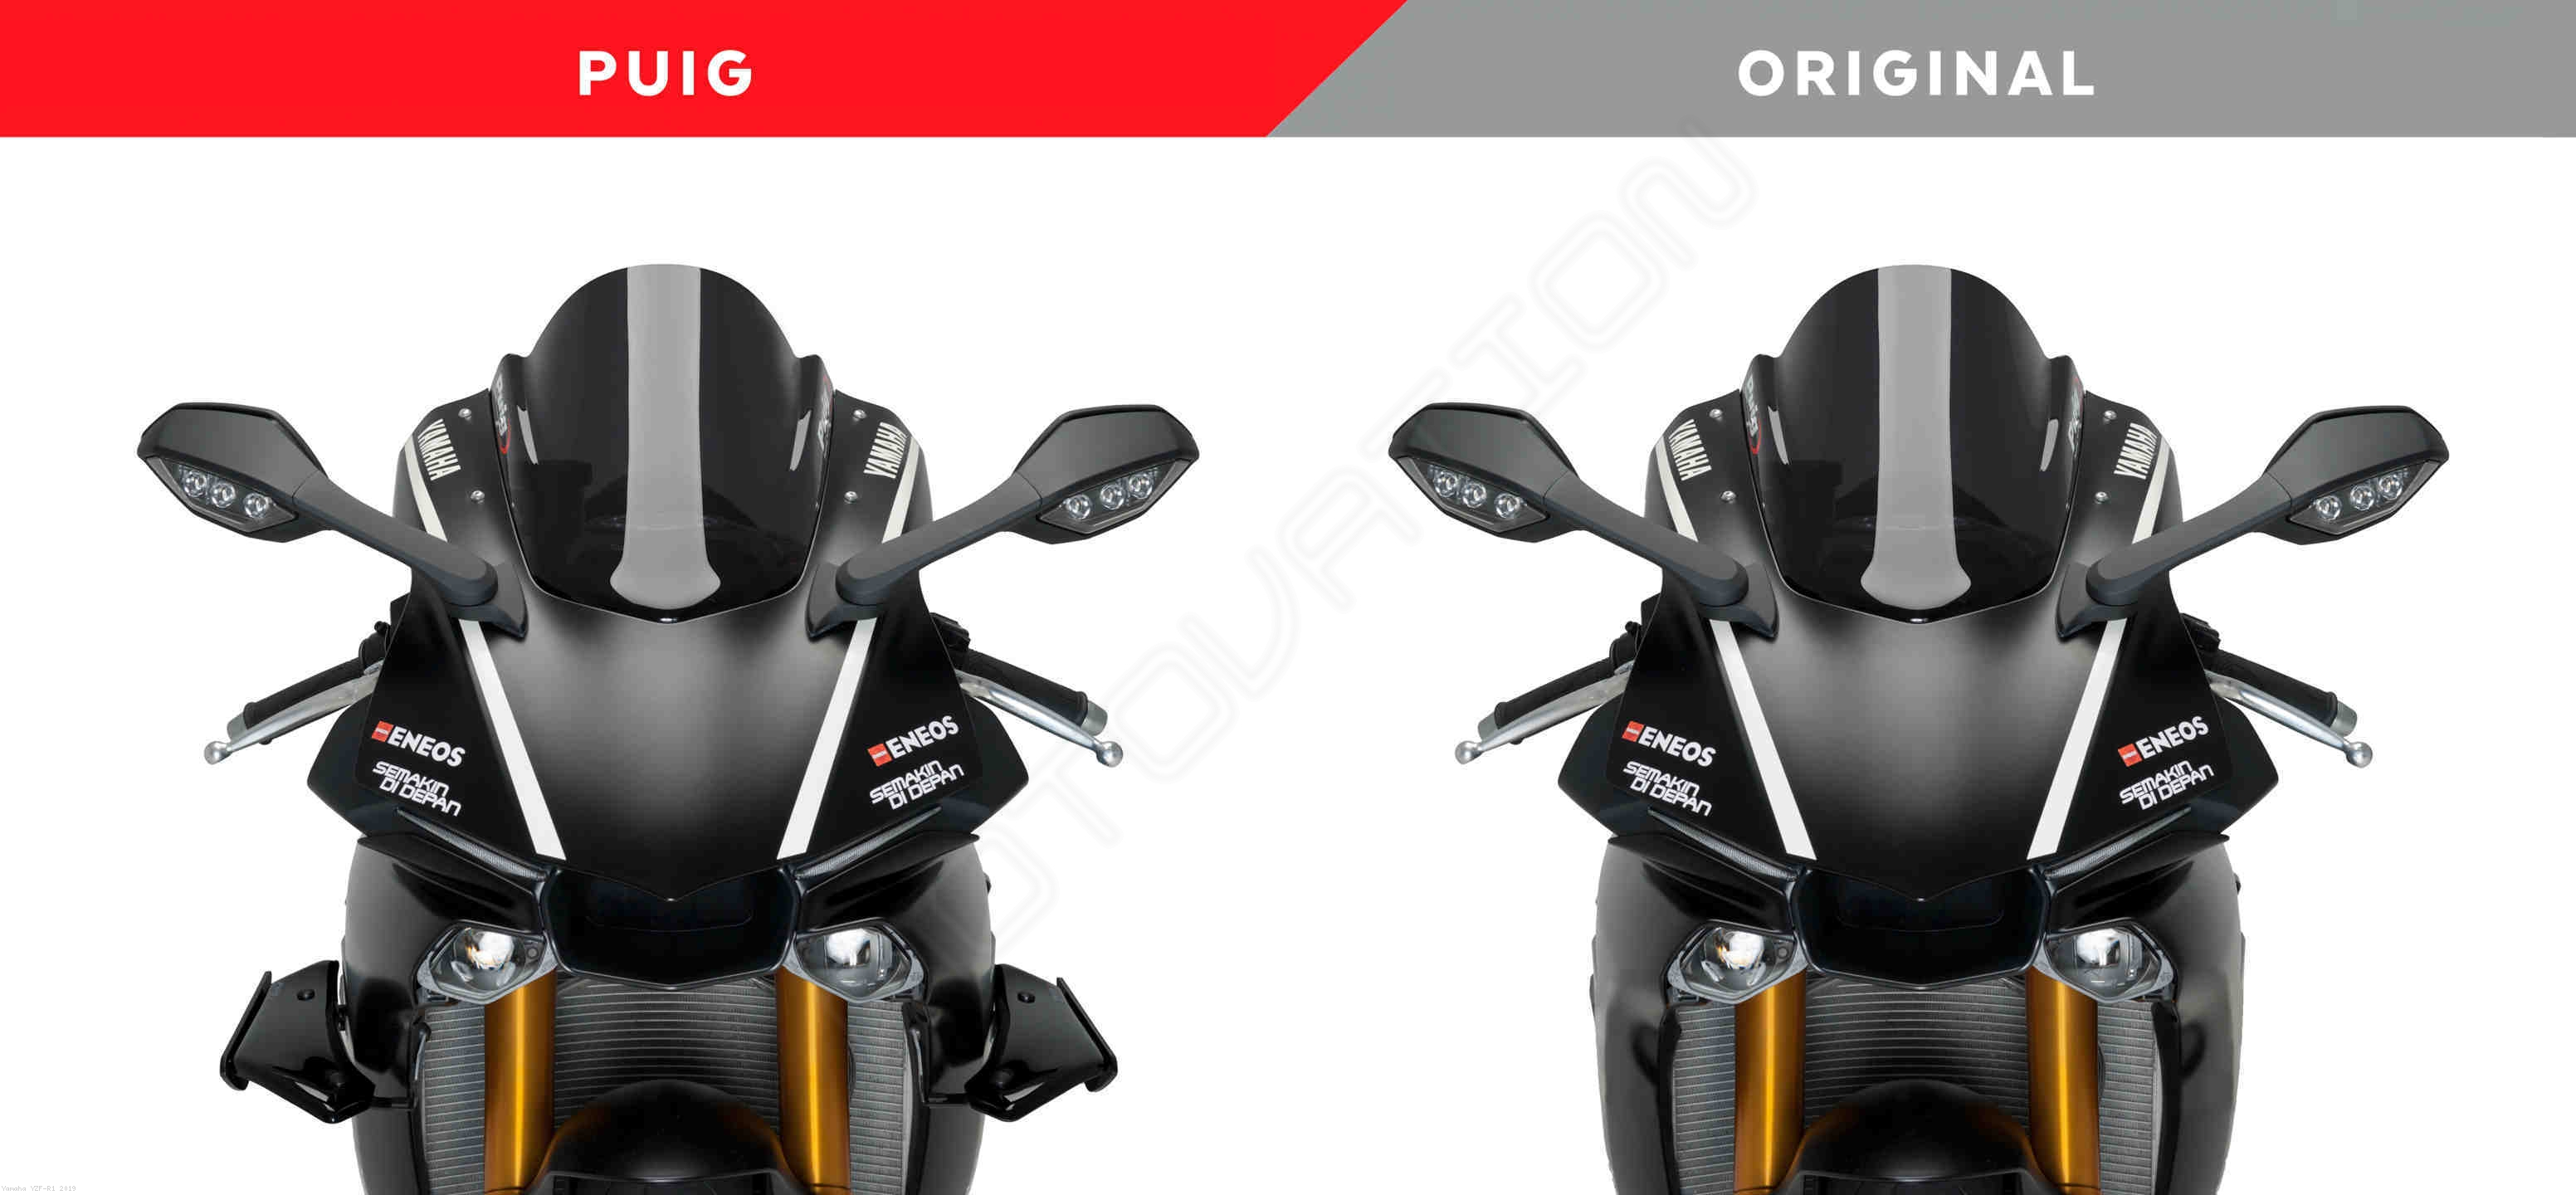 Downforce Spoiler Winglets By Puig Yamaha Yzf R1 2019